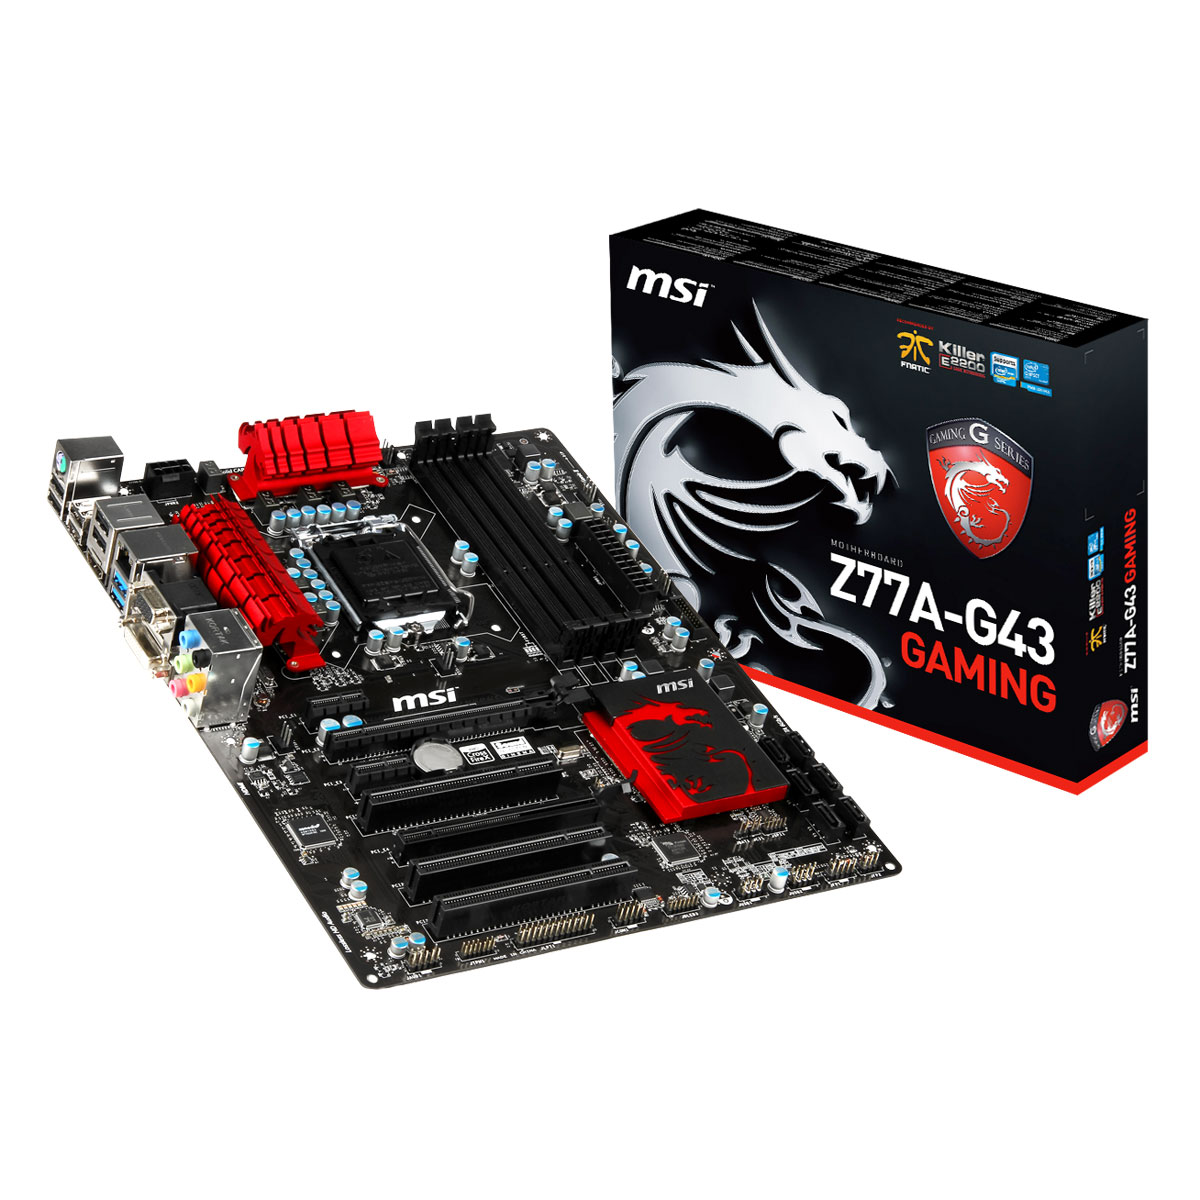 msi z77a g43 gaming carte m re msi sur. Black Bedroom Furniture Sets. Home Design Ideas